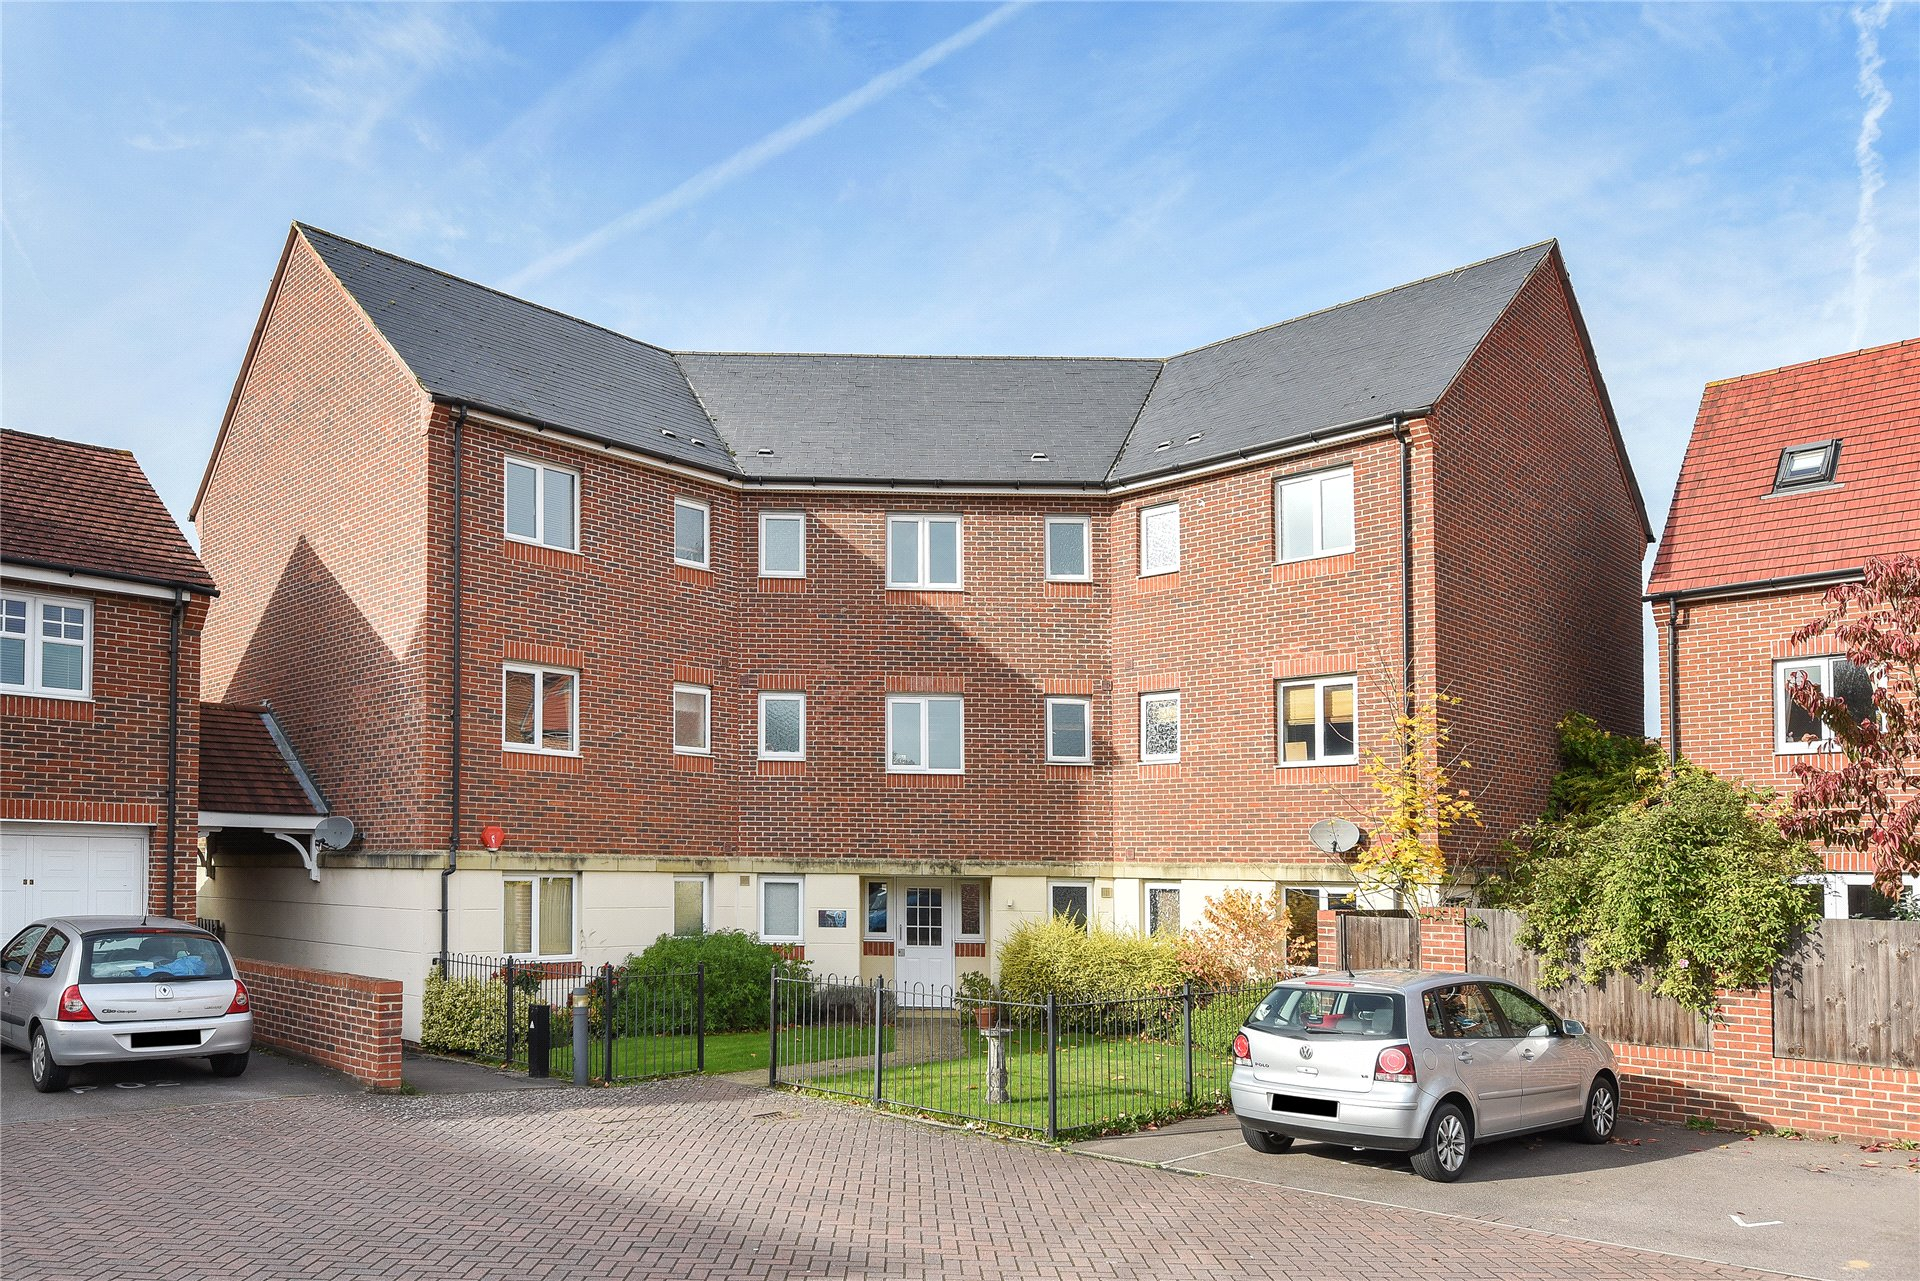 2 Bedrooms Apartment Flat for sale in Osprey Avenue, Bracknell, Berkshire, RG12